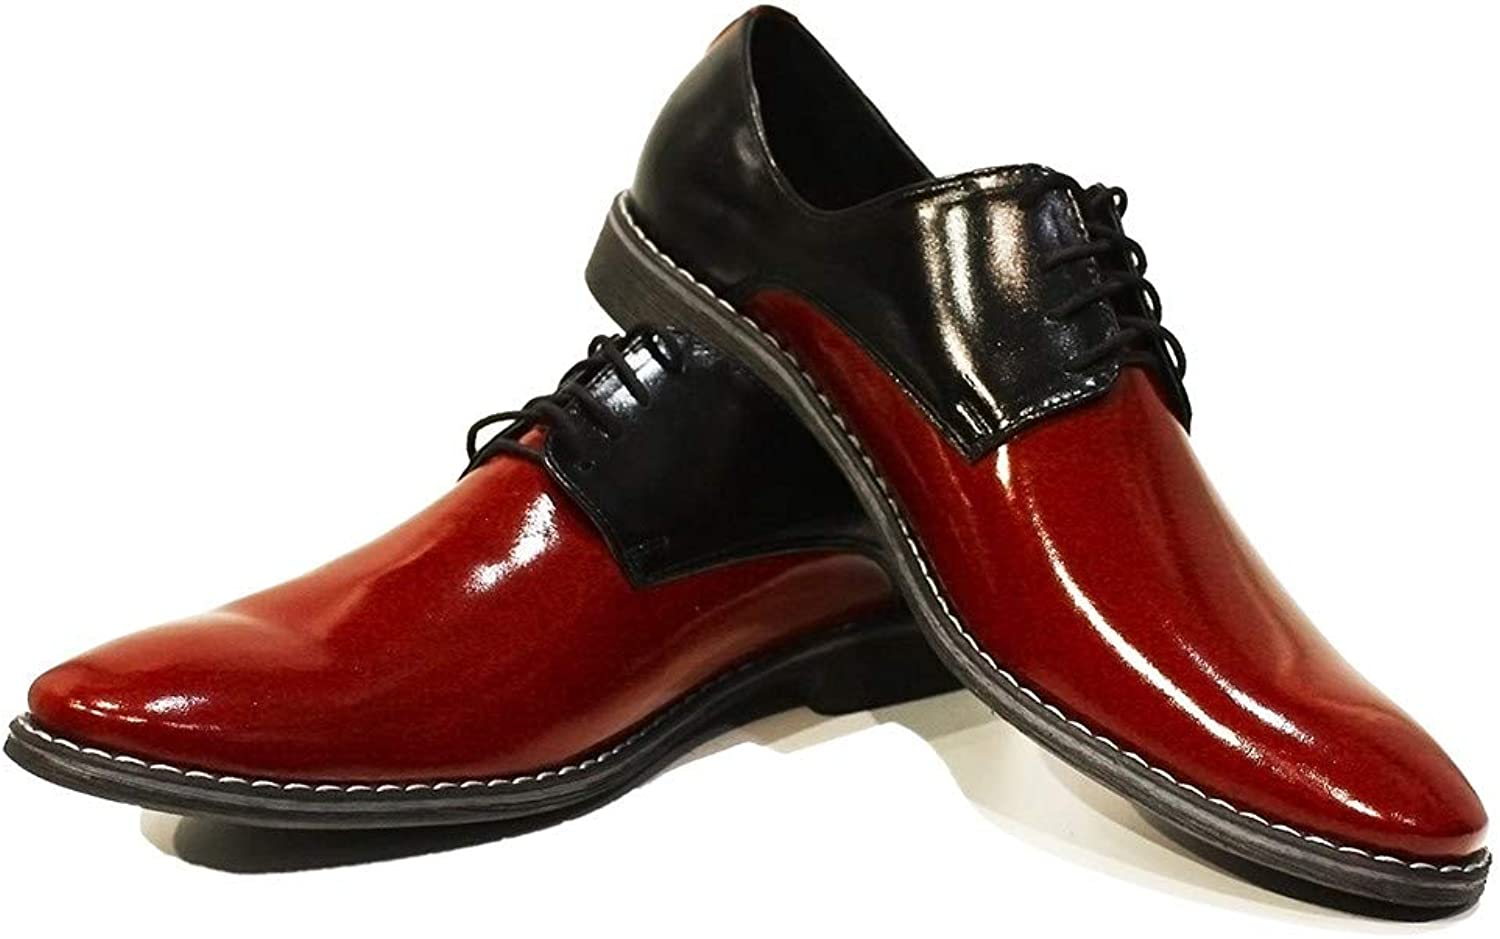 Modello Viareggio - Handmade Italian Leather Mens color Red Oxfords Dress shoes - Cowhide Patent Leather - Lace-Up